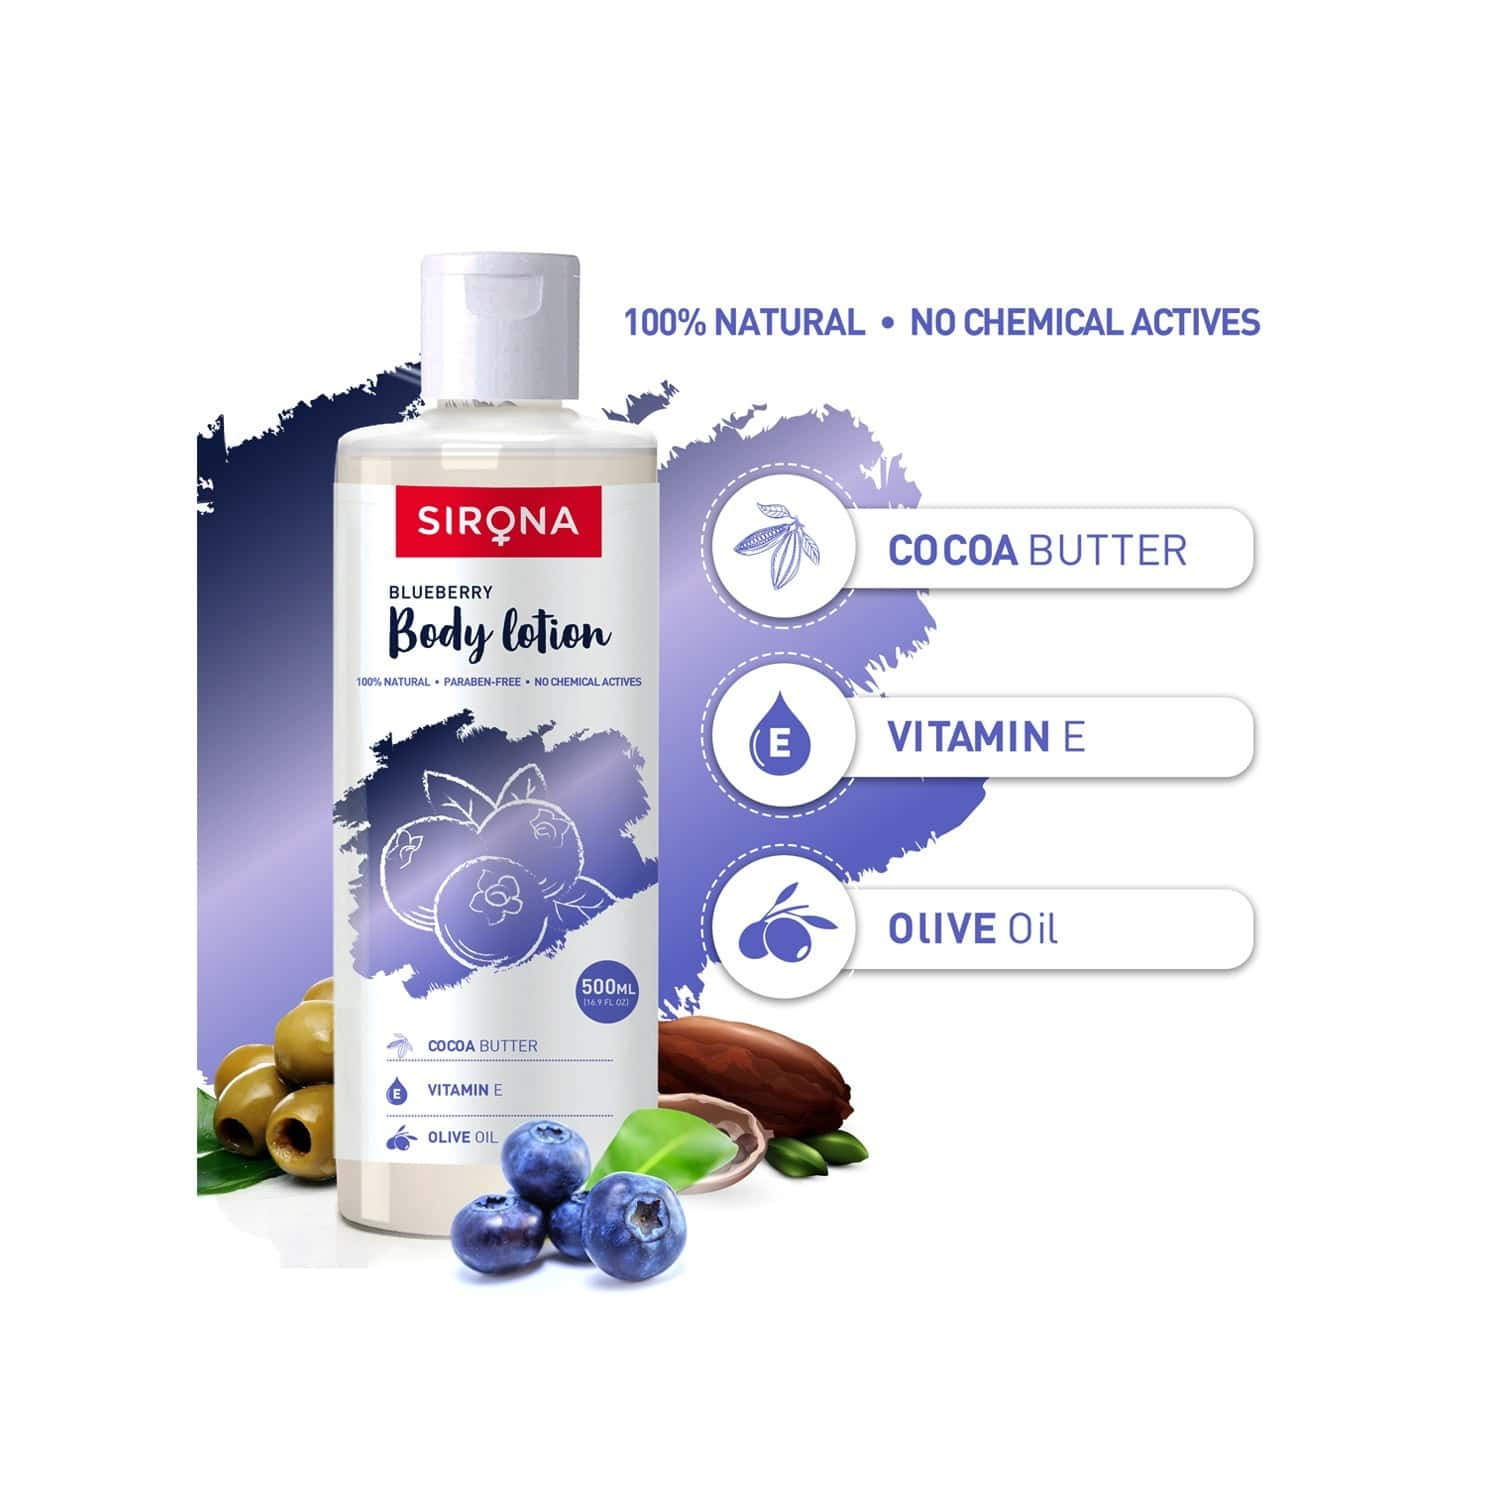 Sirona Natural Blueberry Body Lotion With Cocoa Butter - Vitamin E And Olive Oil - 500ml